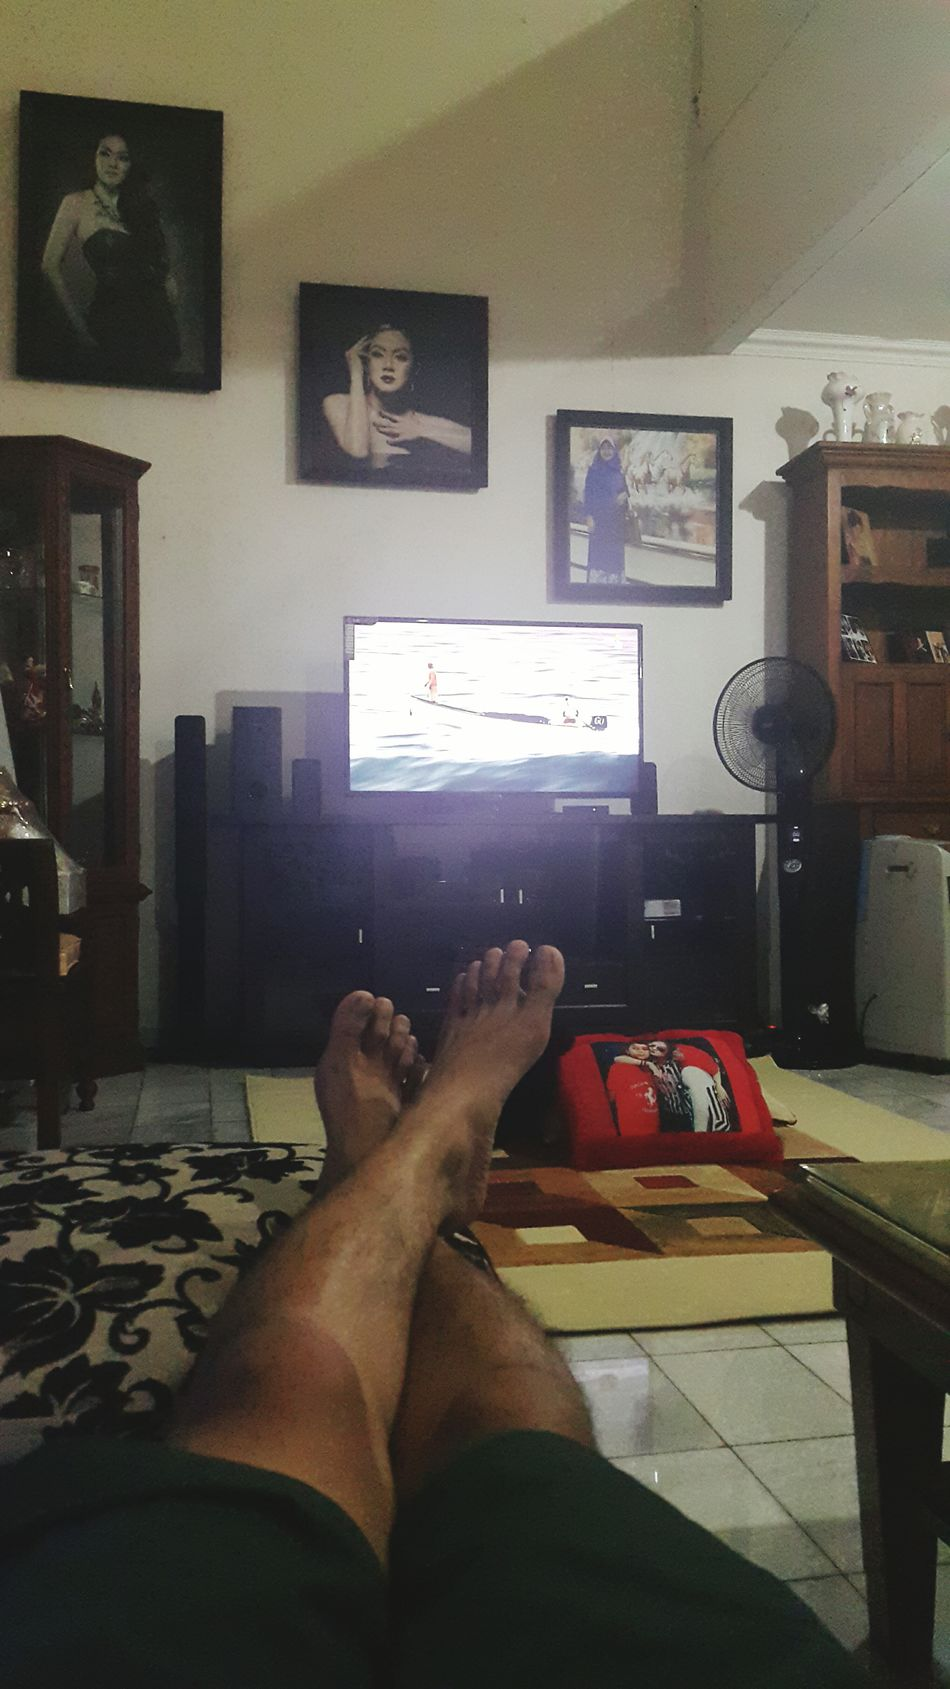 Watching Tv Home Sweet Home That's Me Jakarta INDONESIA